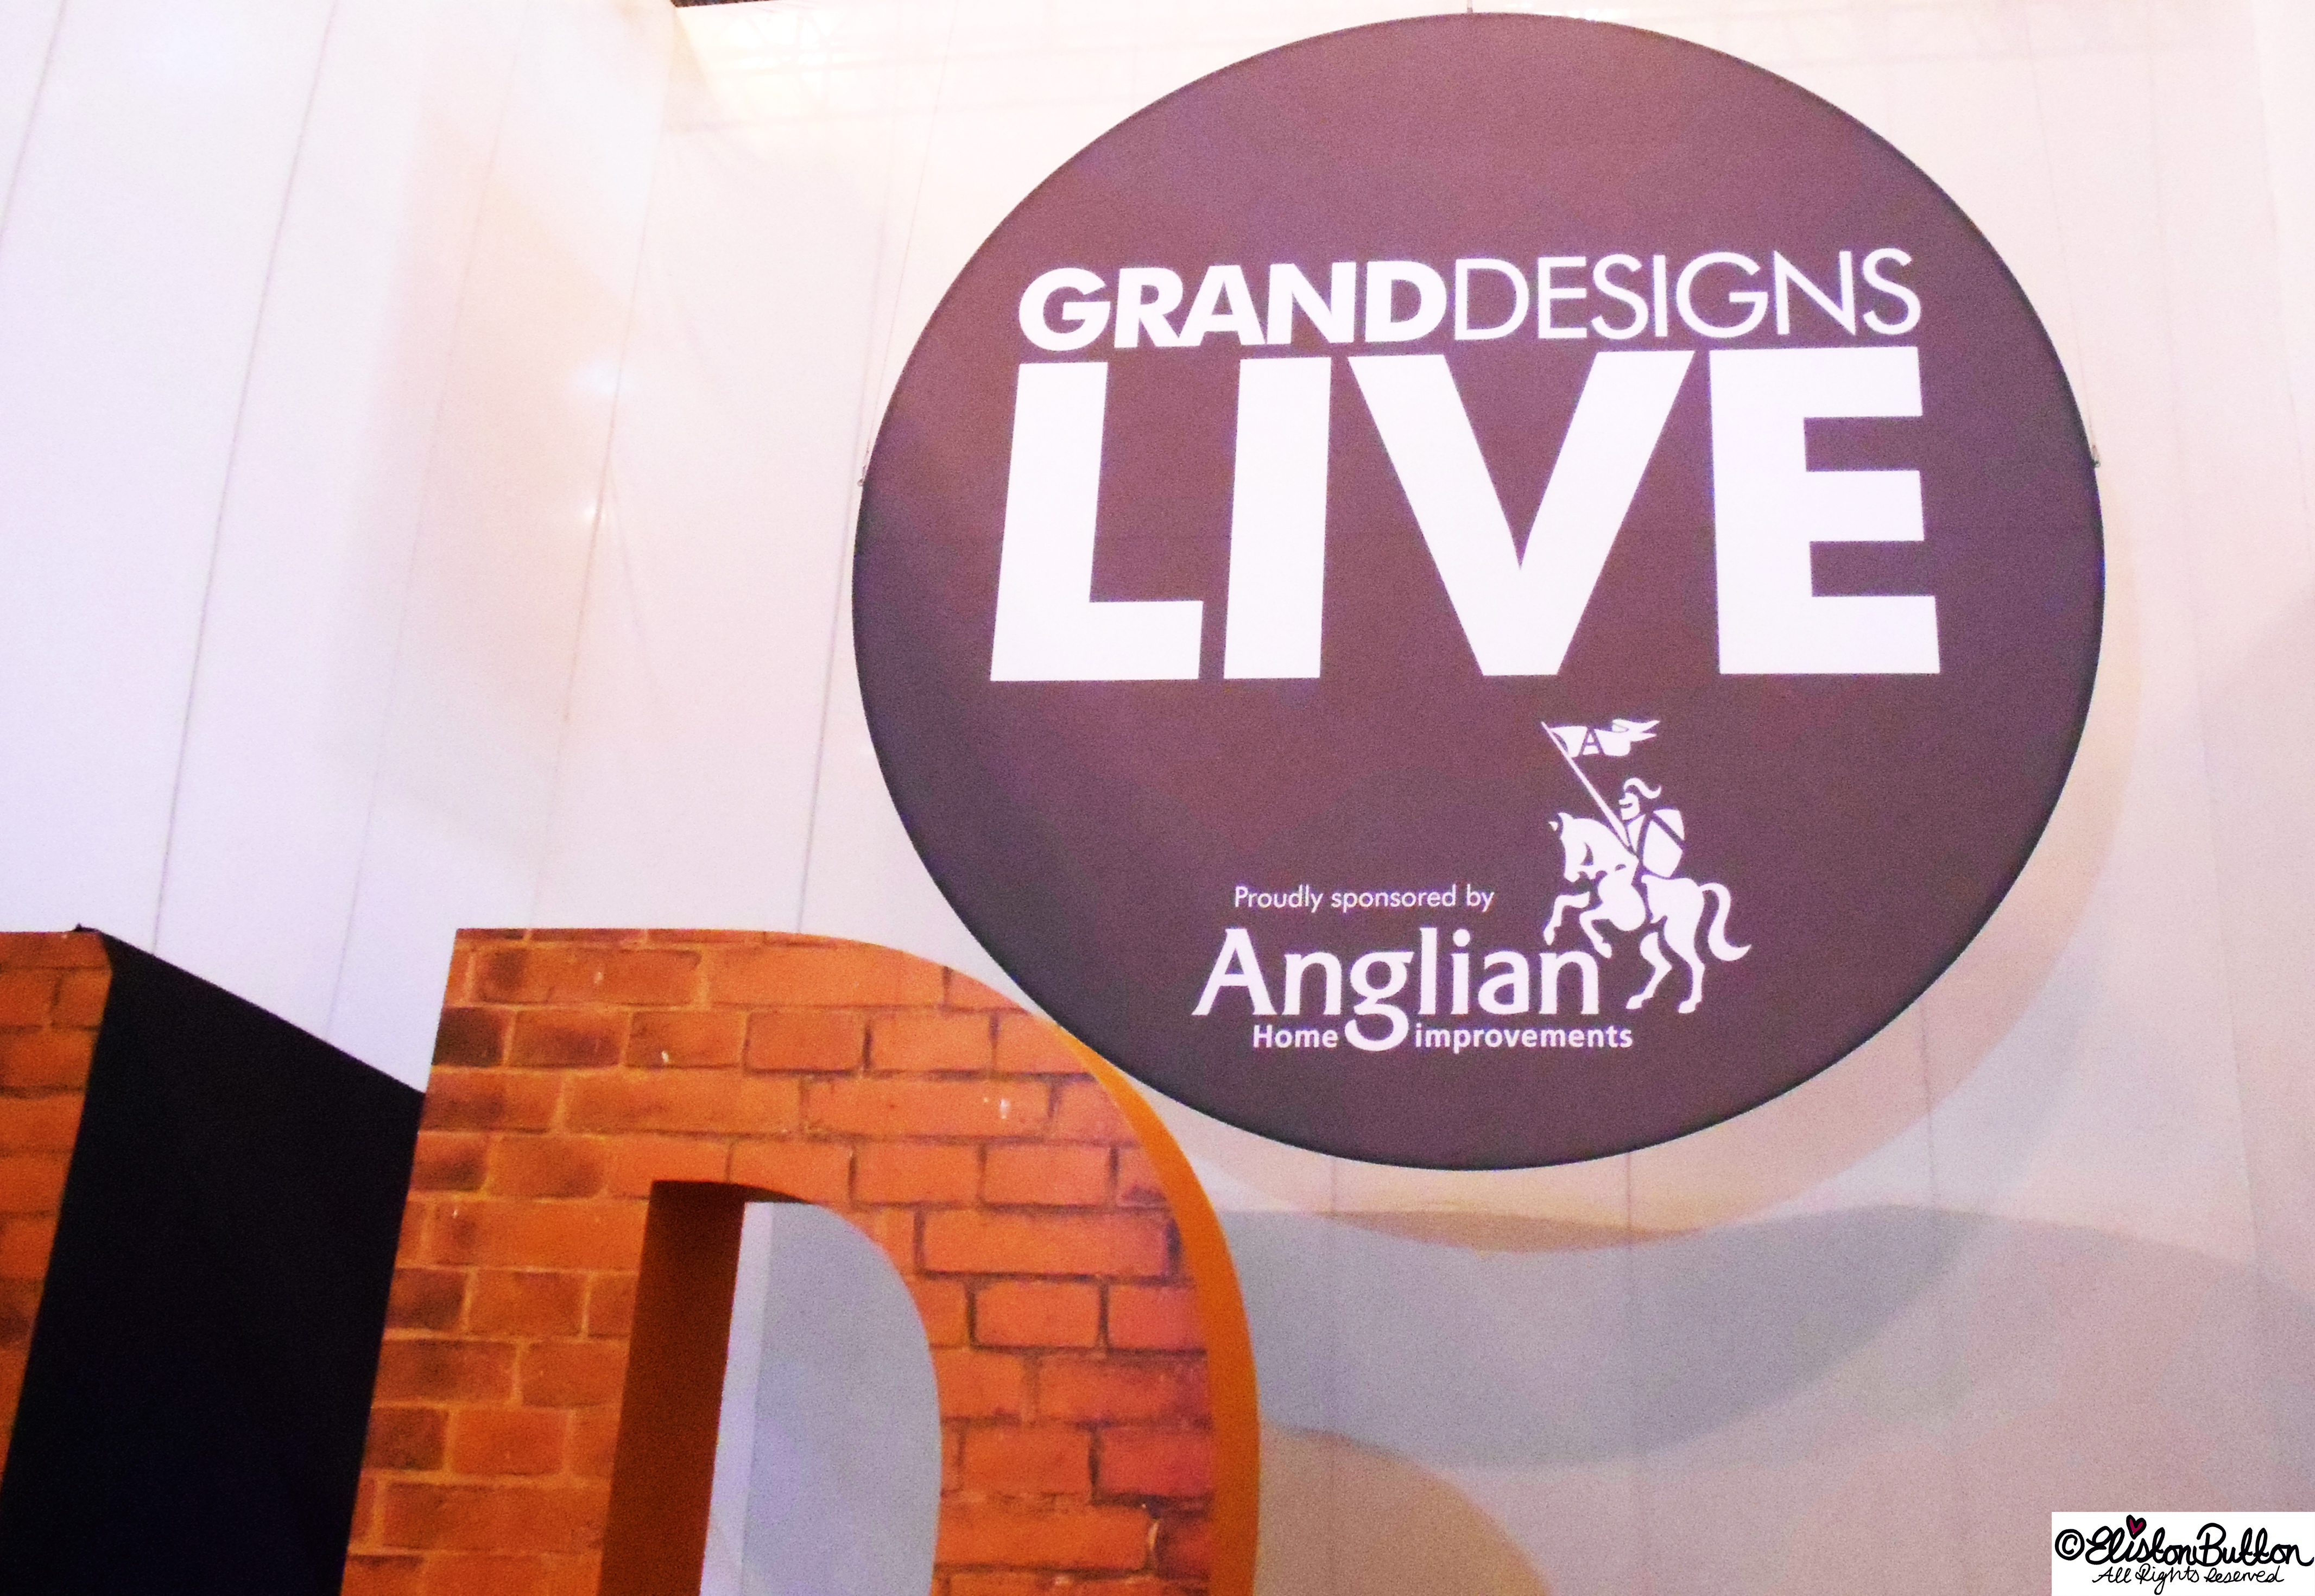 Grand Designs Live Show - Grand Designs Live - Part One at www.elistonbutton.com - Eliston Button - That Crafty Kid – Art, Design, Craft & Adventure.